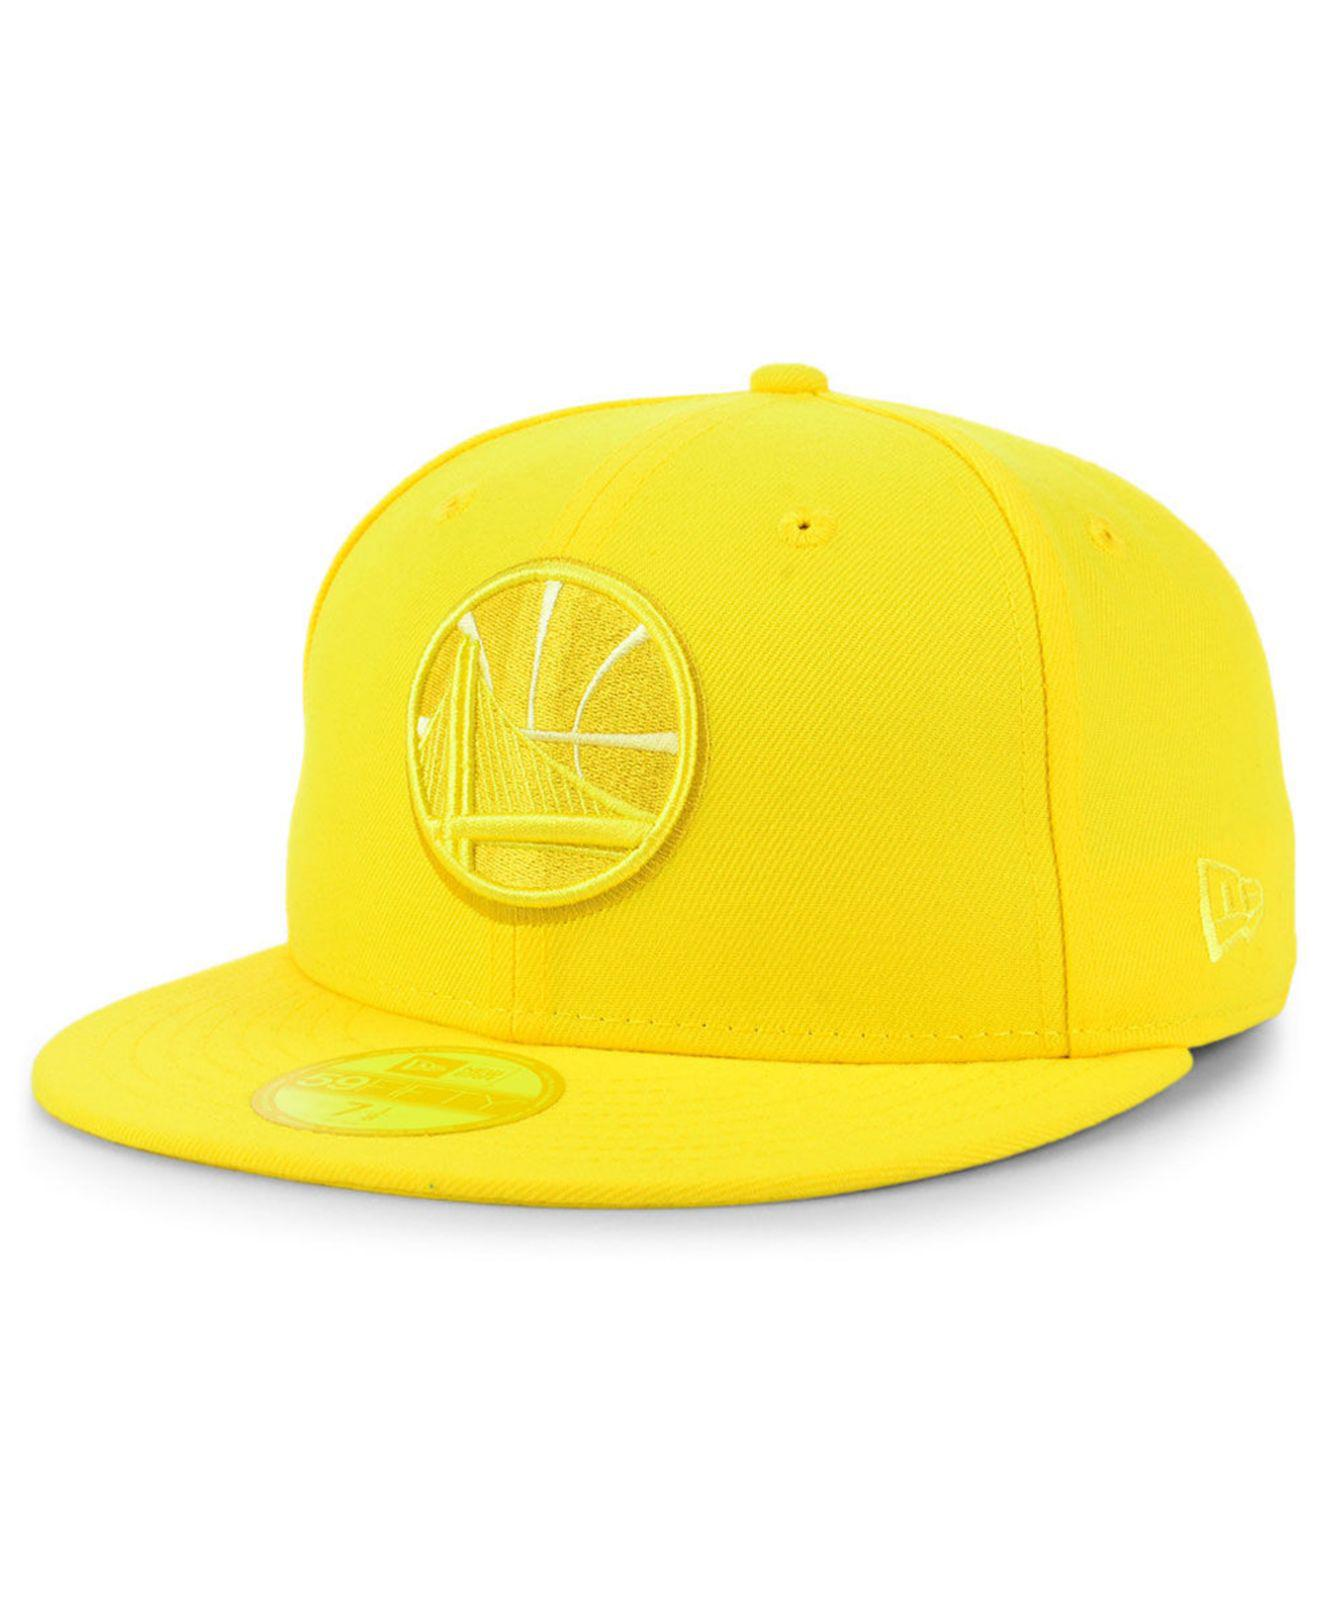 buy popular c5ba0 30147 ... promo code lyst ktz golden state warriors color prism pack 59fifty  fitted cap 2ac0d a57d7